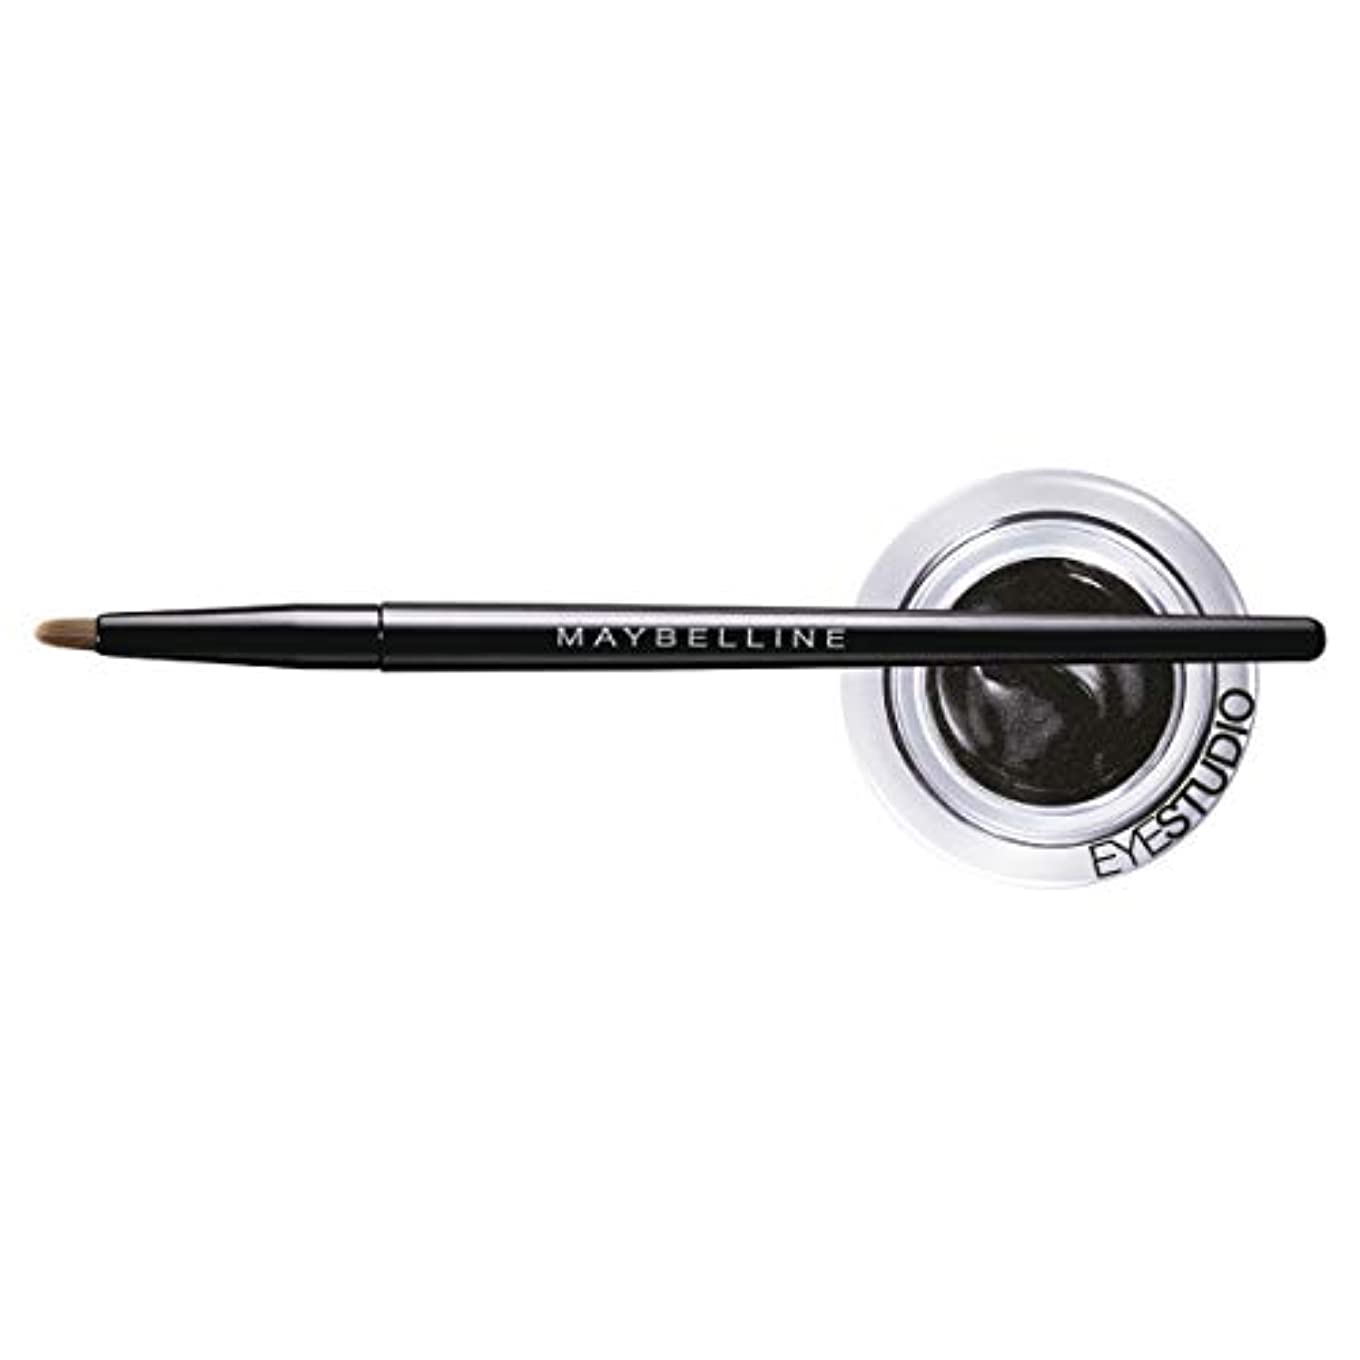 MAYBELLINE Eye Studio Lasting Drama Gel Eyeliner - Blackest Black 950 (並行輸入品)